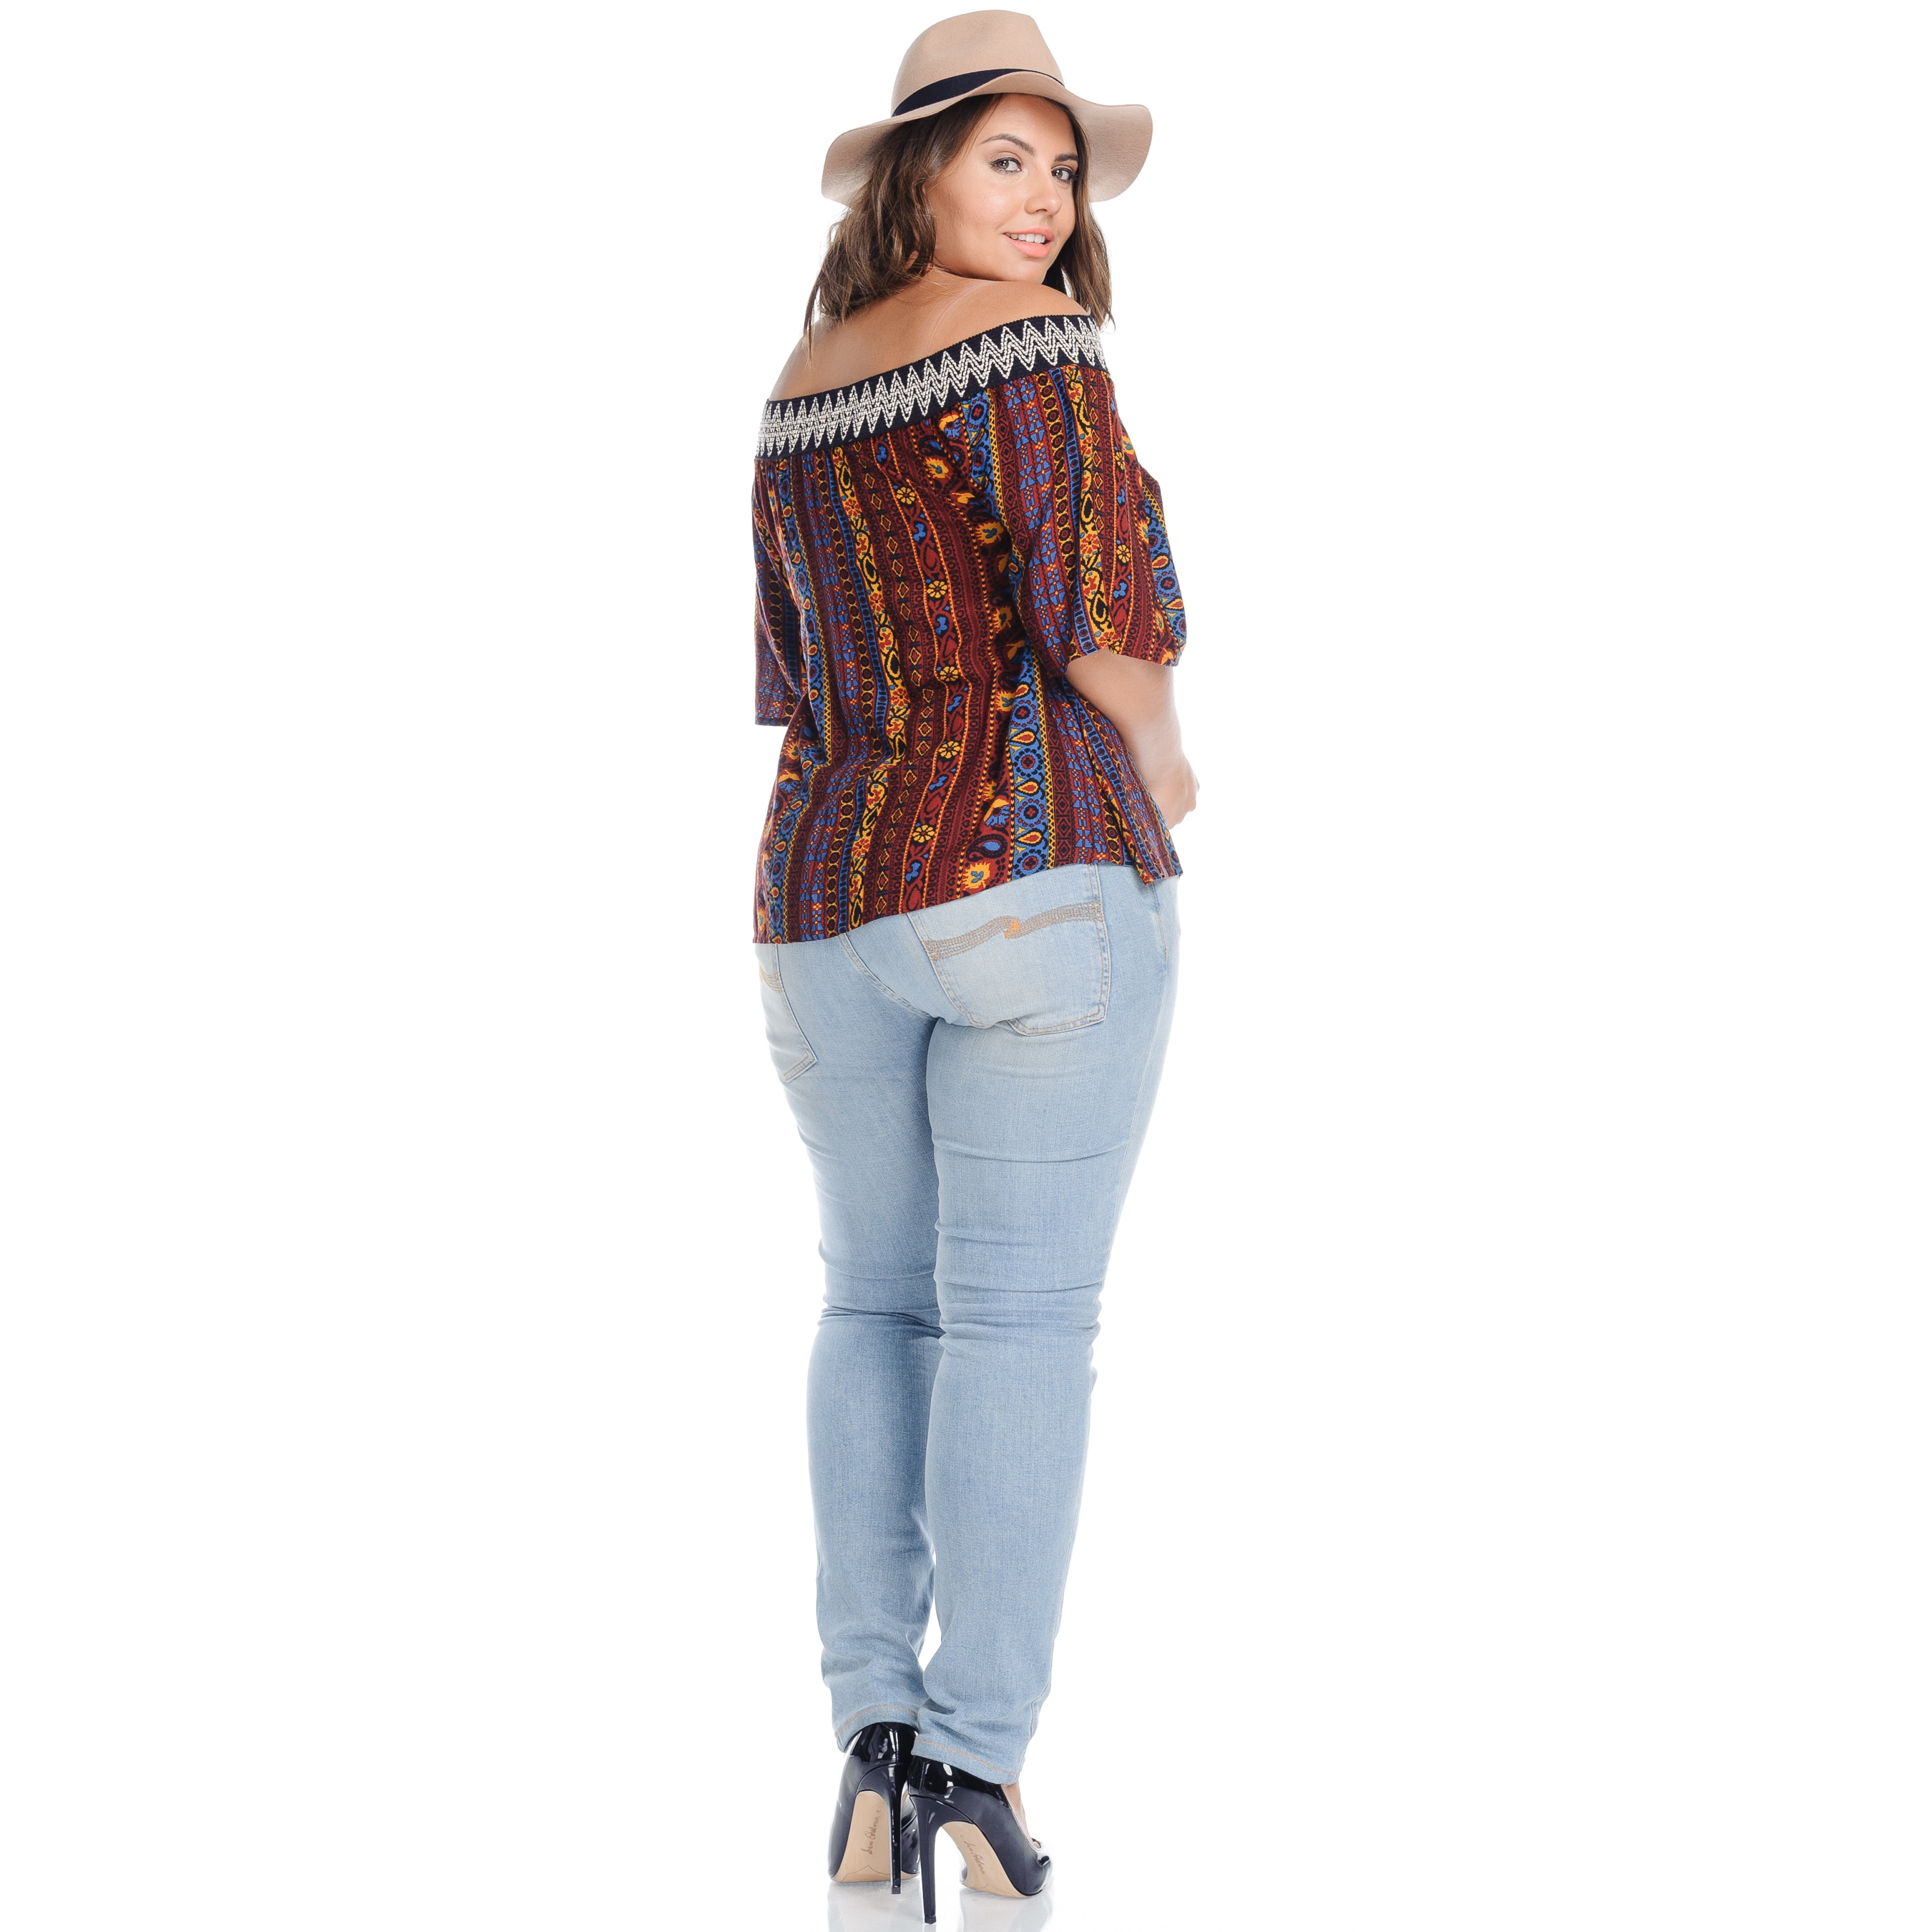 Plus Size Boho Tops For Women